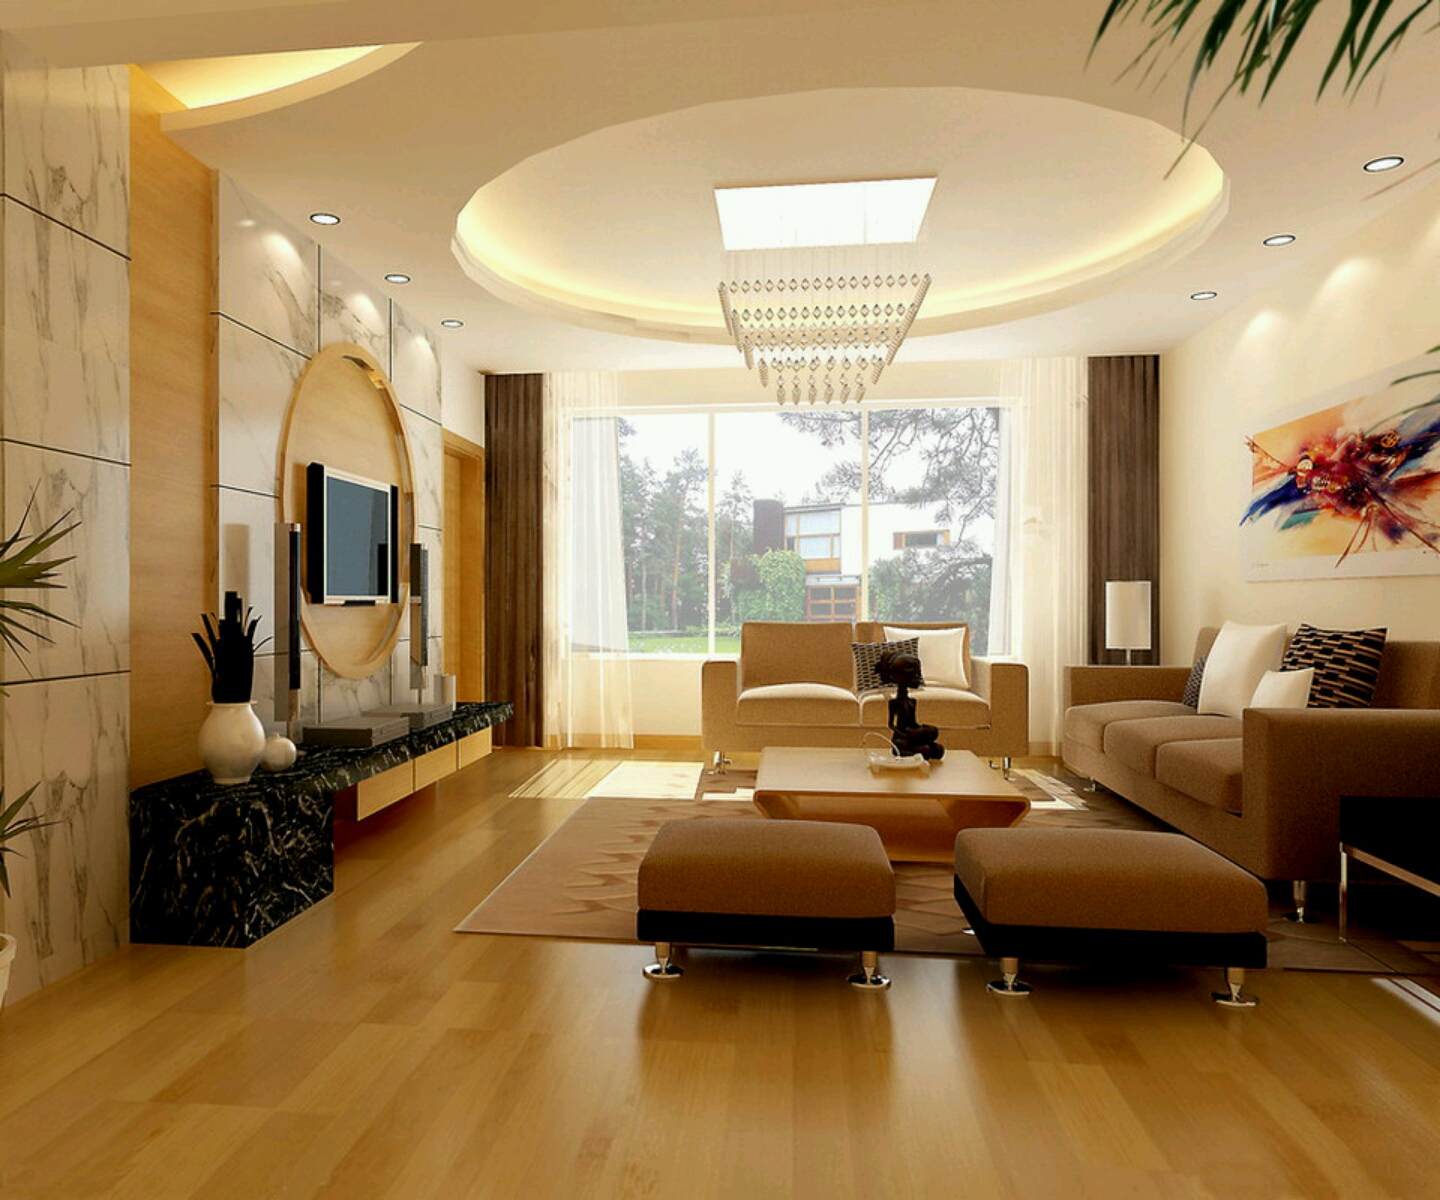 Modern interior decoration living rooms ceiling designs for Living room home decor ideas